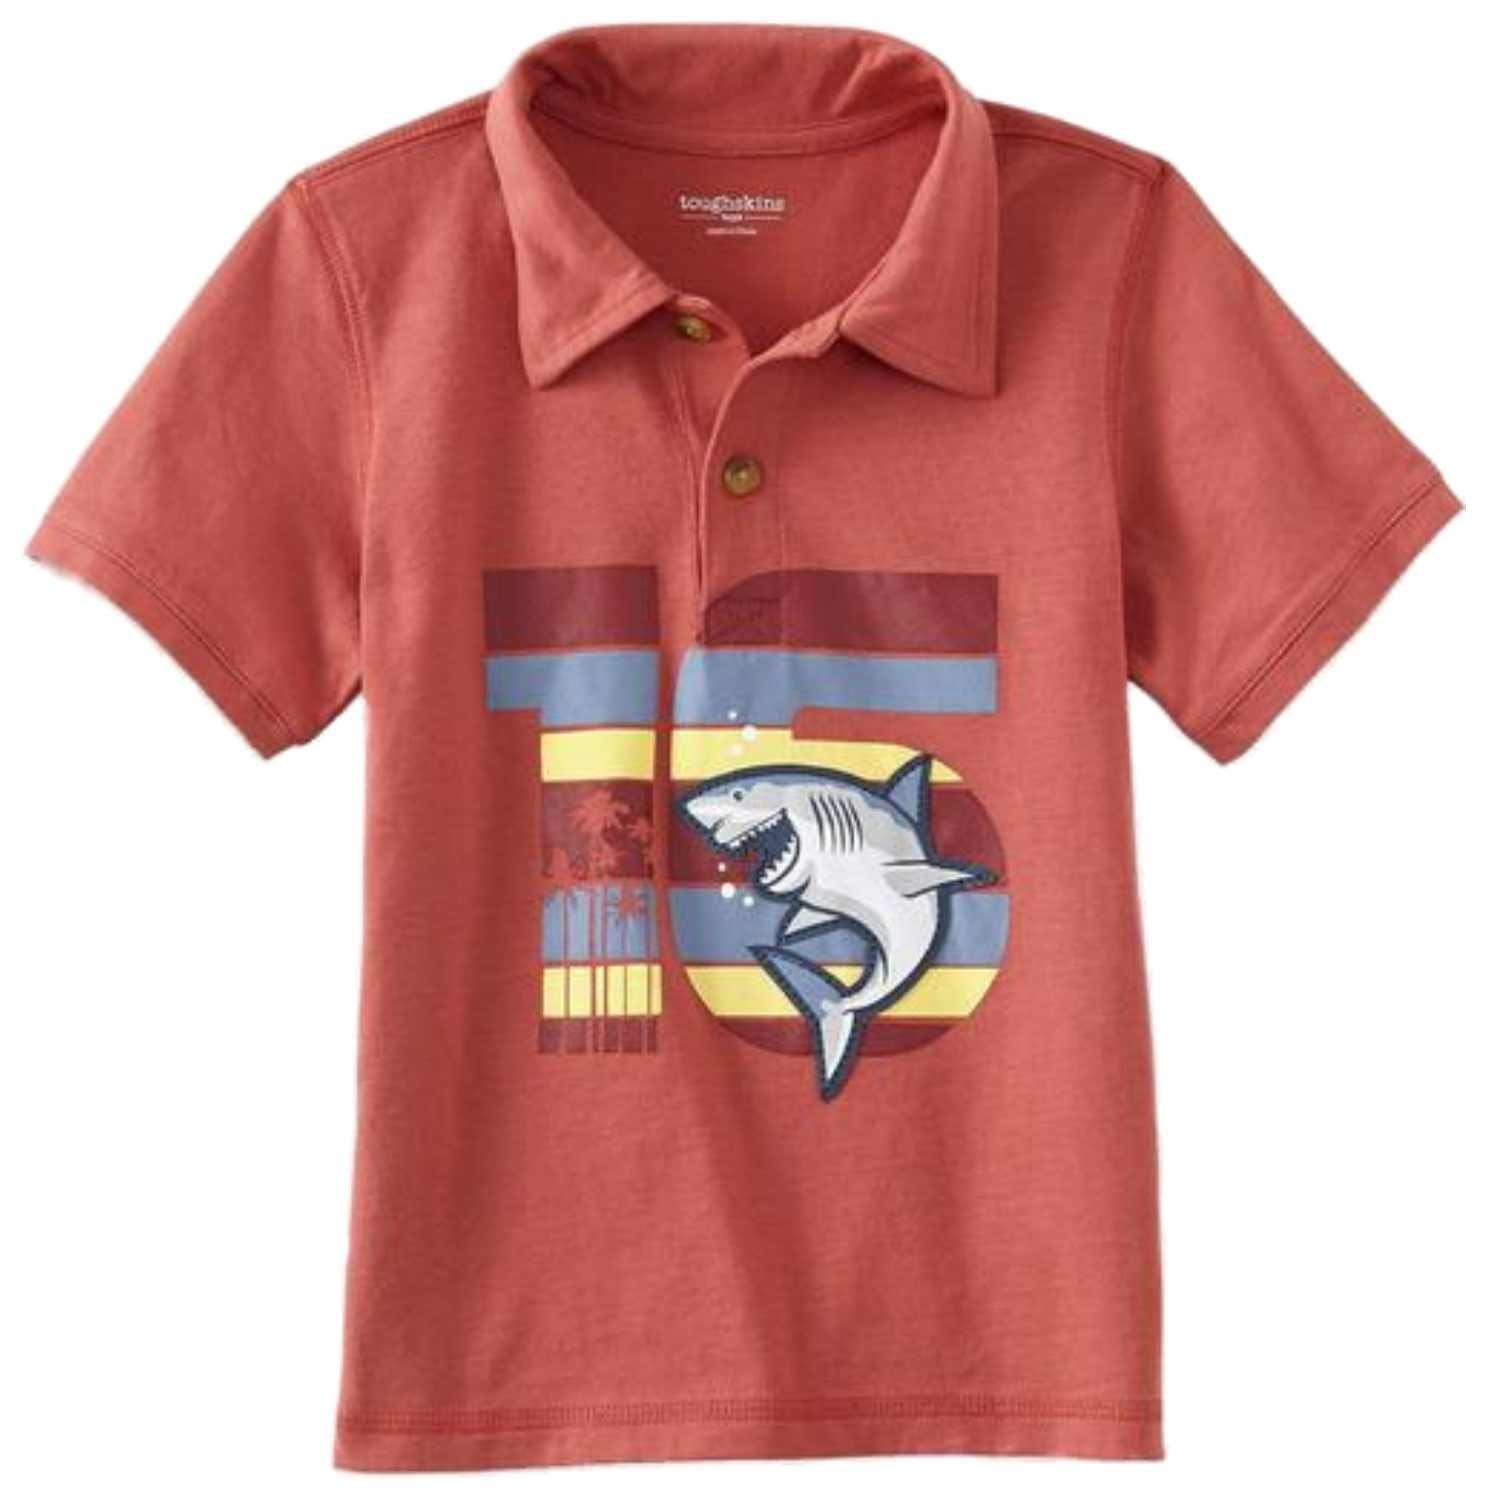 83c9359afe Get Quotations · Toughskins Toddler & Little Boys Red Polo Shark T-Shirt